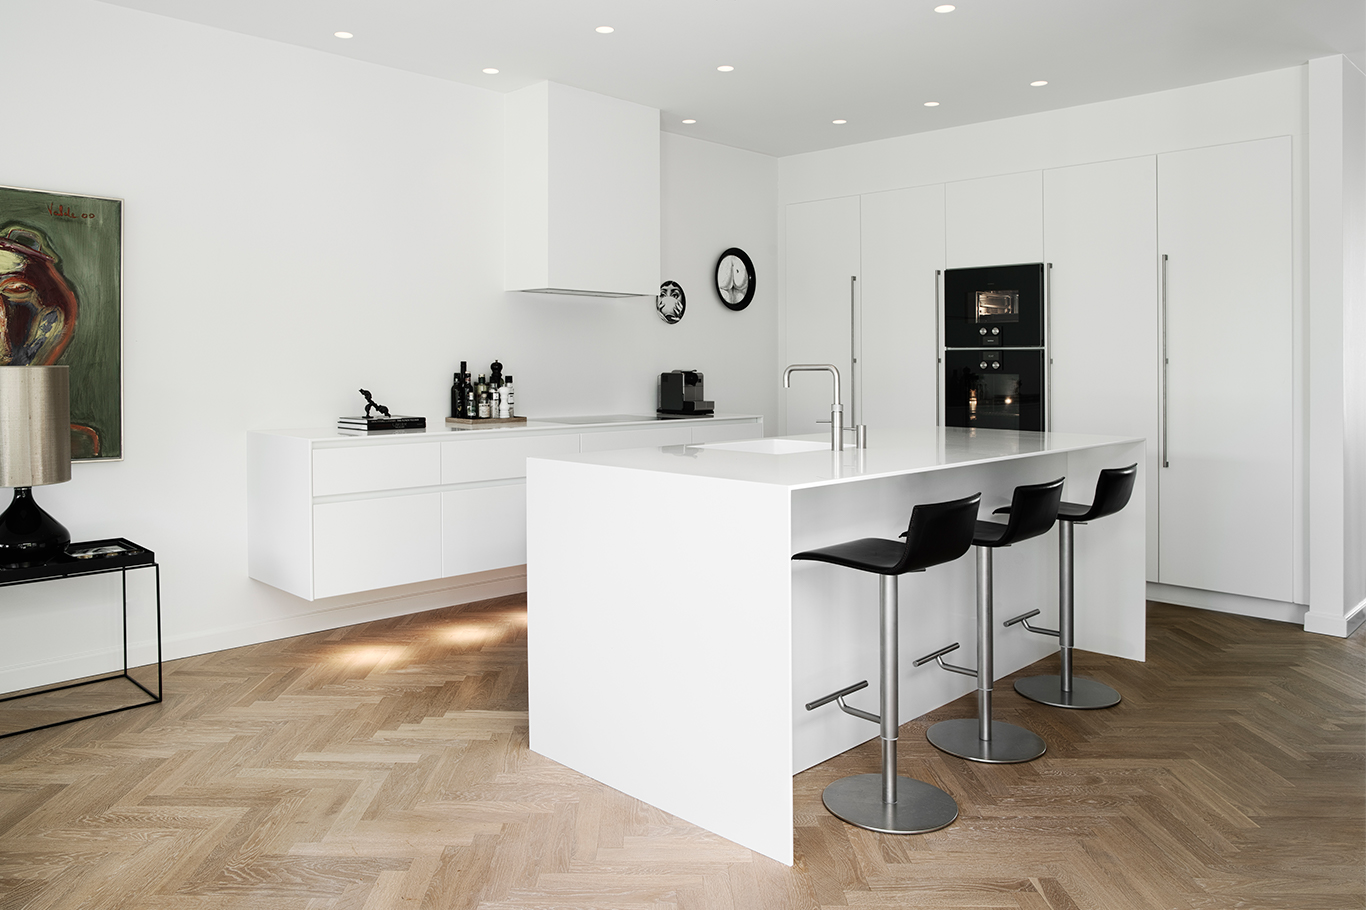 The patrician's villa was given a timeless new Multiform kitchen